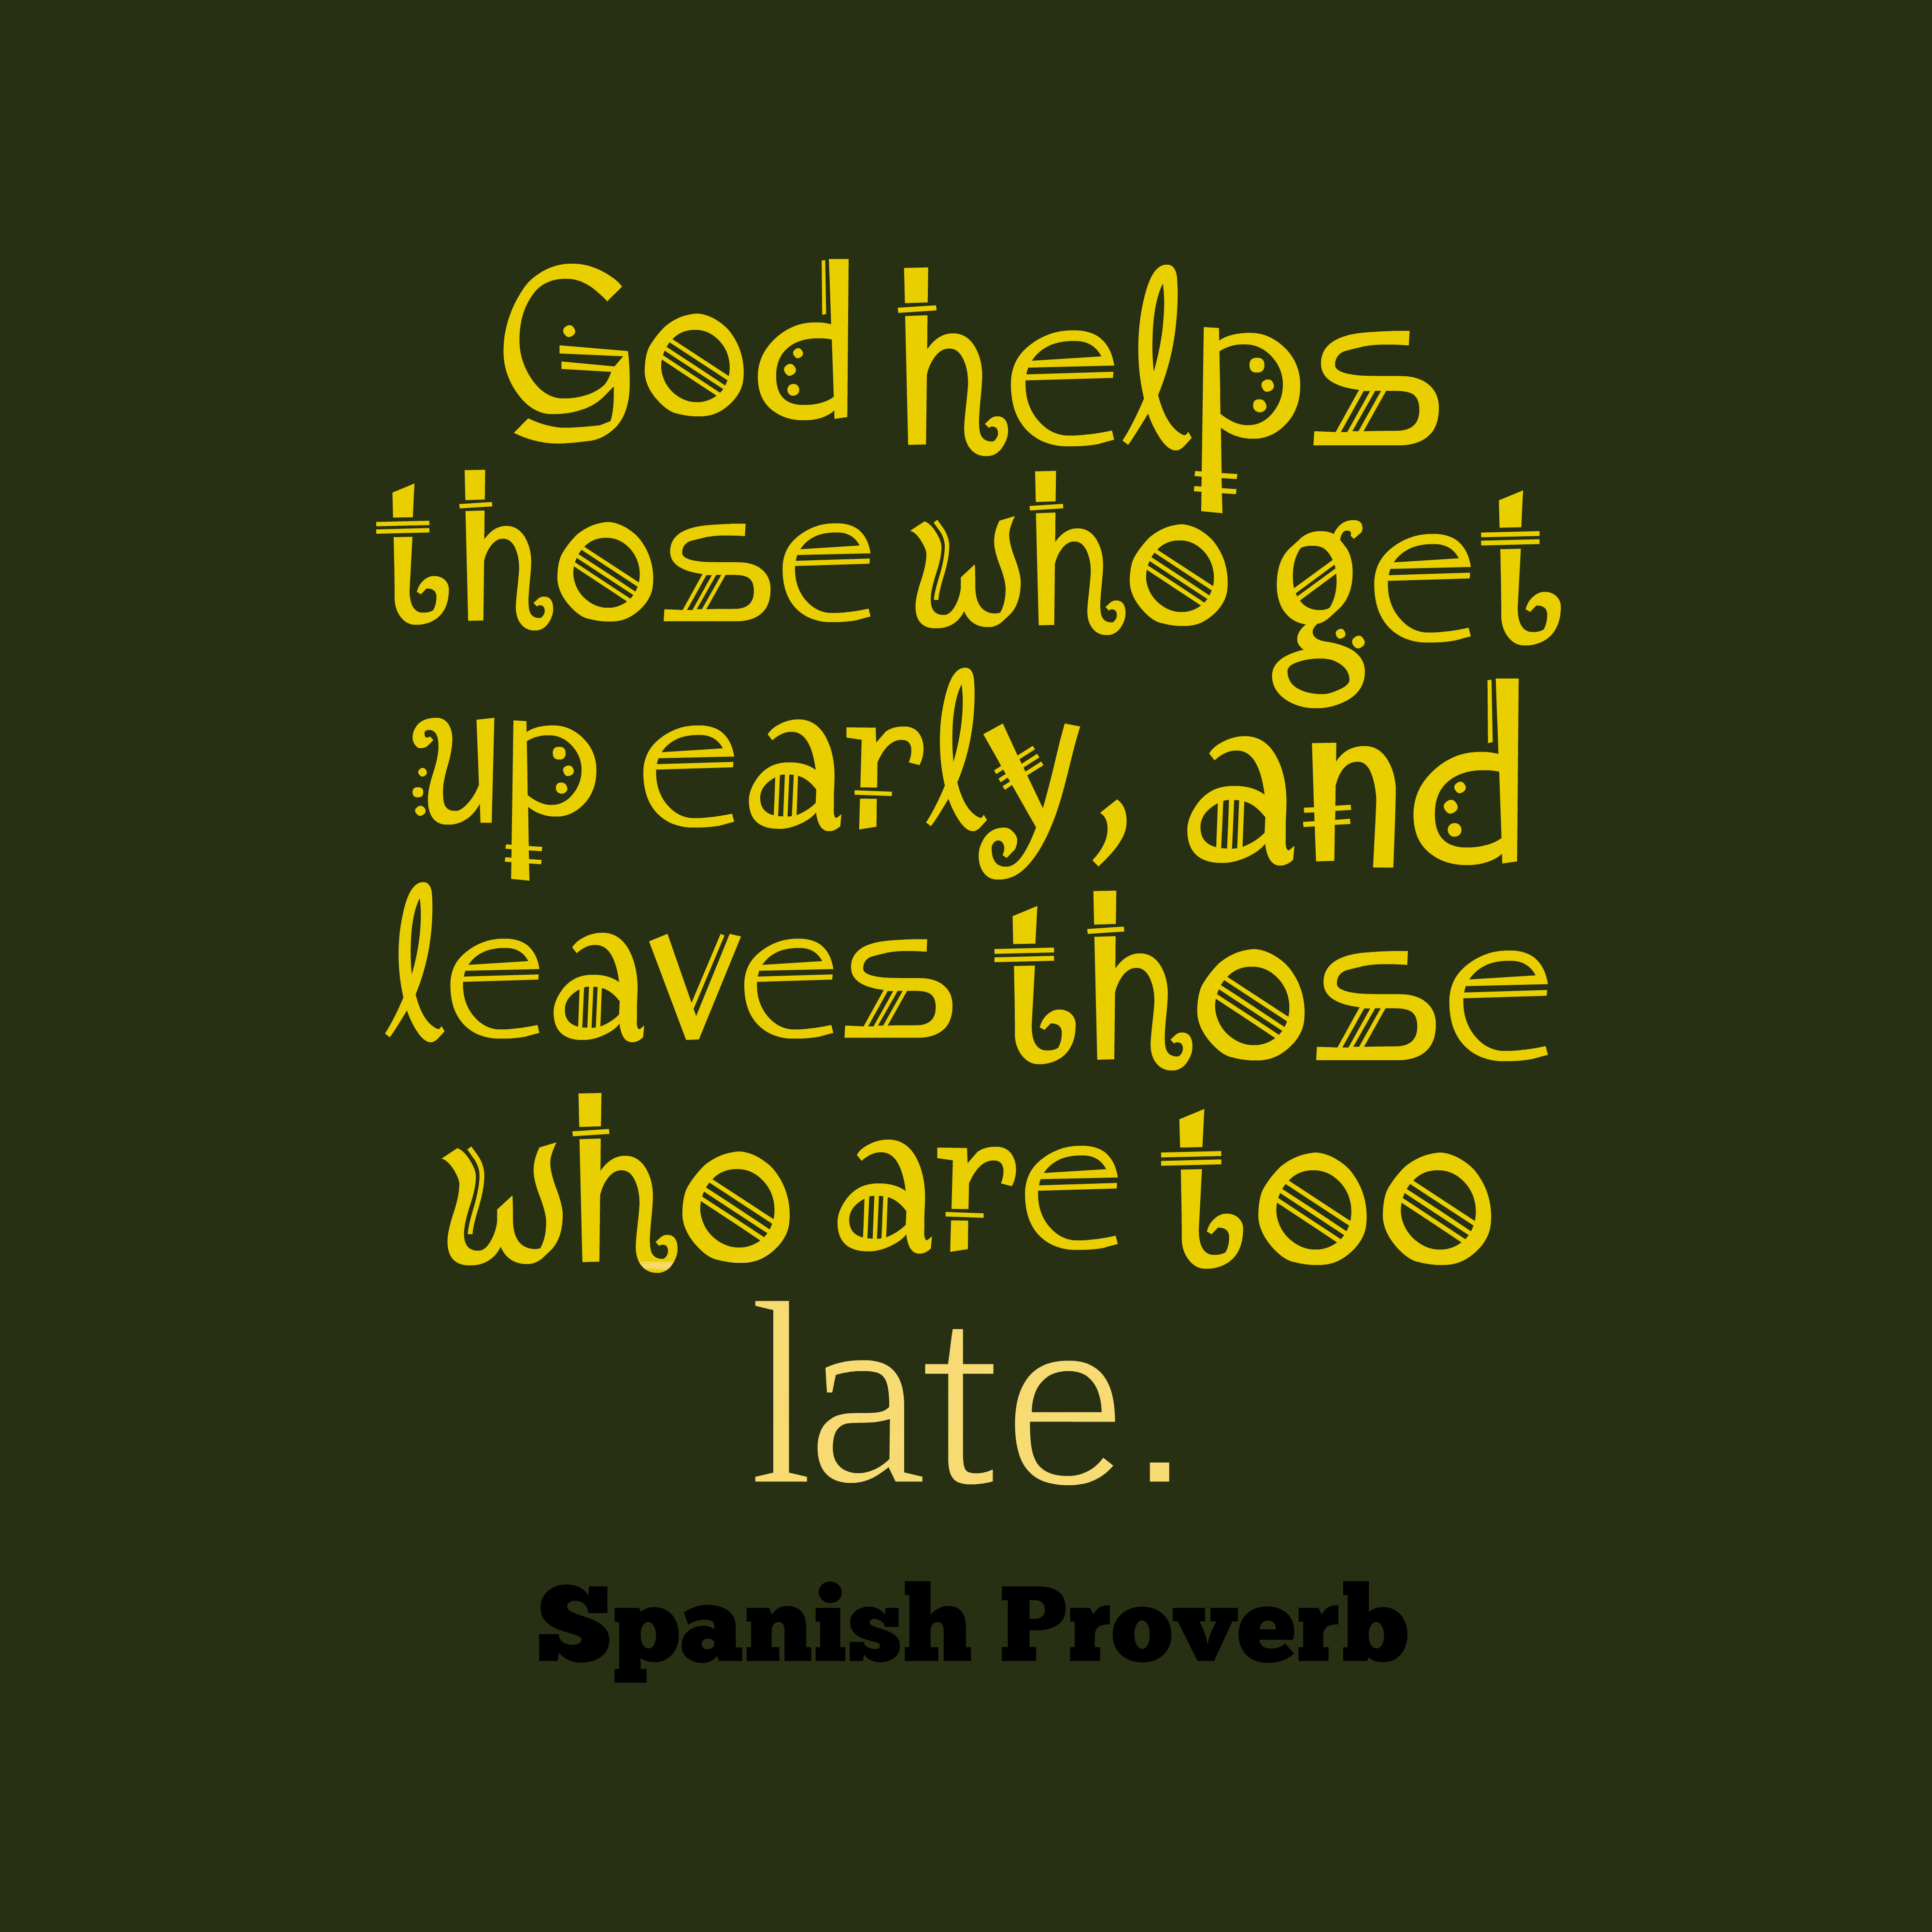 Quotes image of God helps those who get up early, and leaves those who are too late.